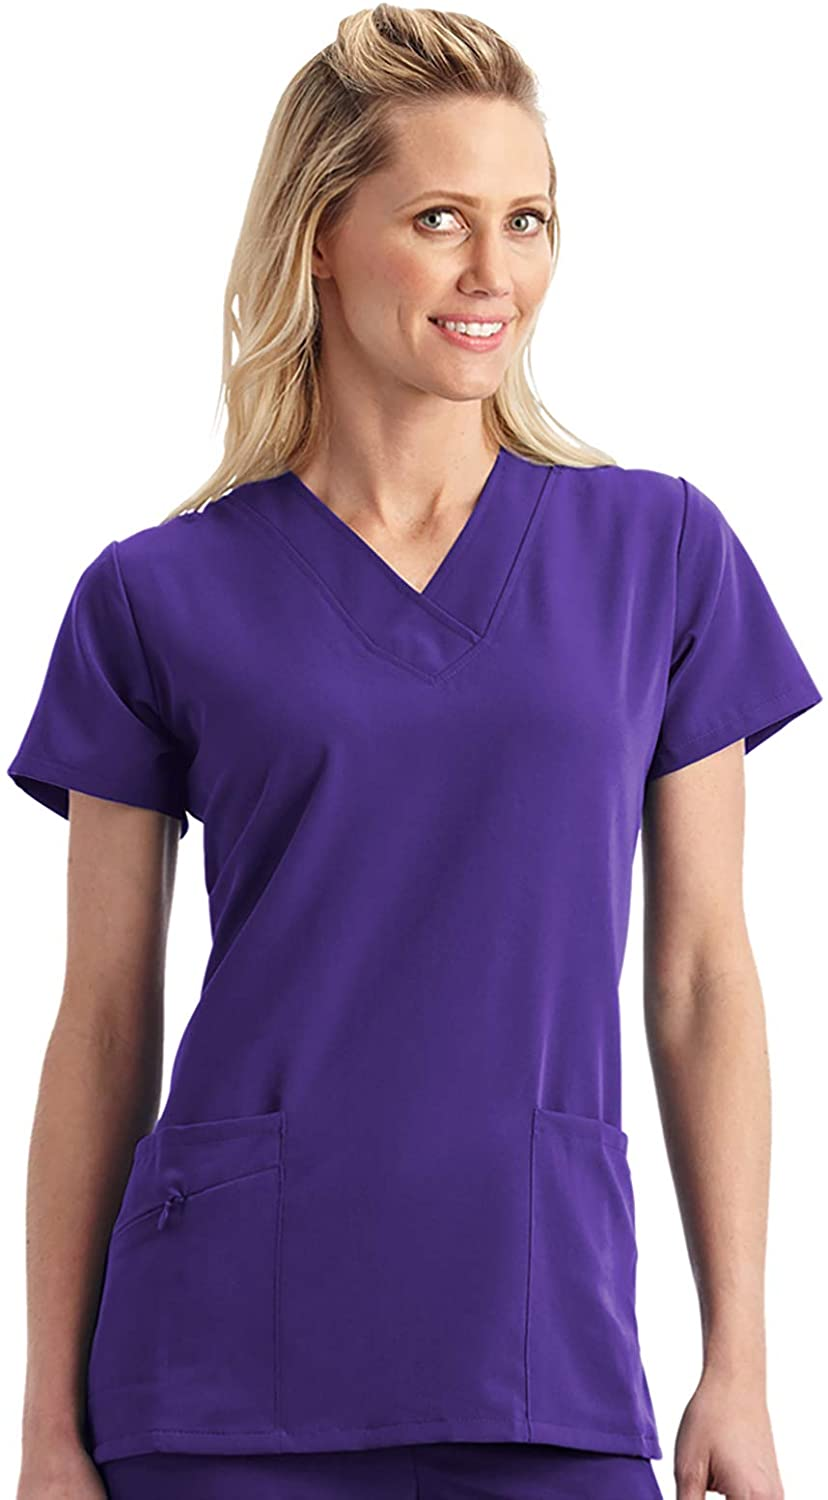 Jockey Women's Scrubs Women's V-Neck Crossover Scrub Top, Purple, XL